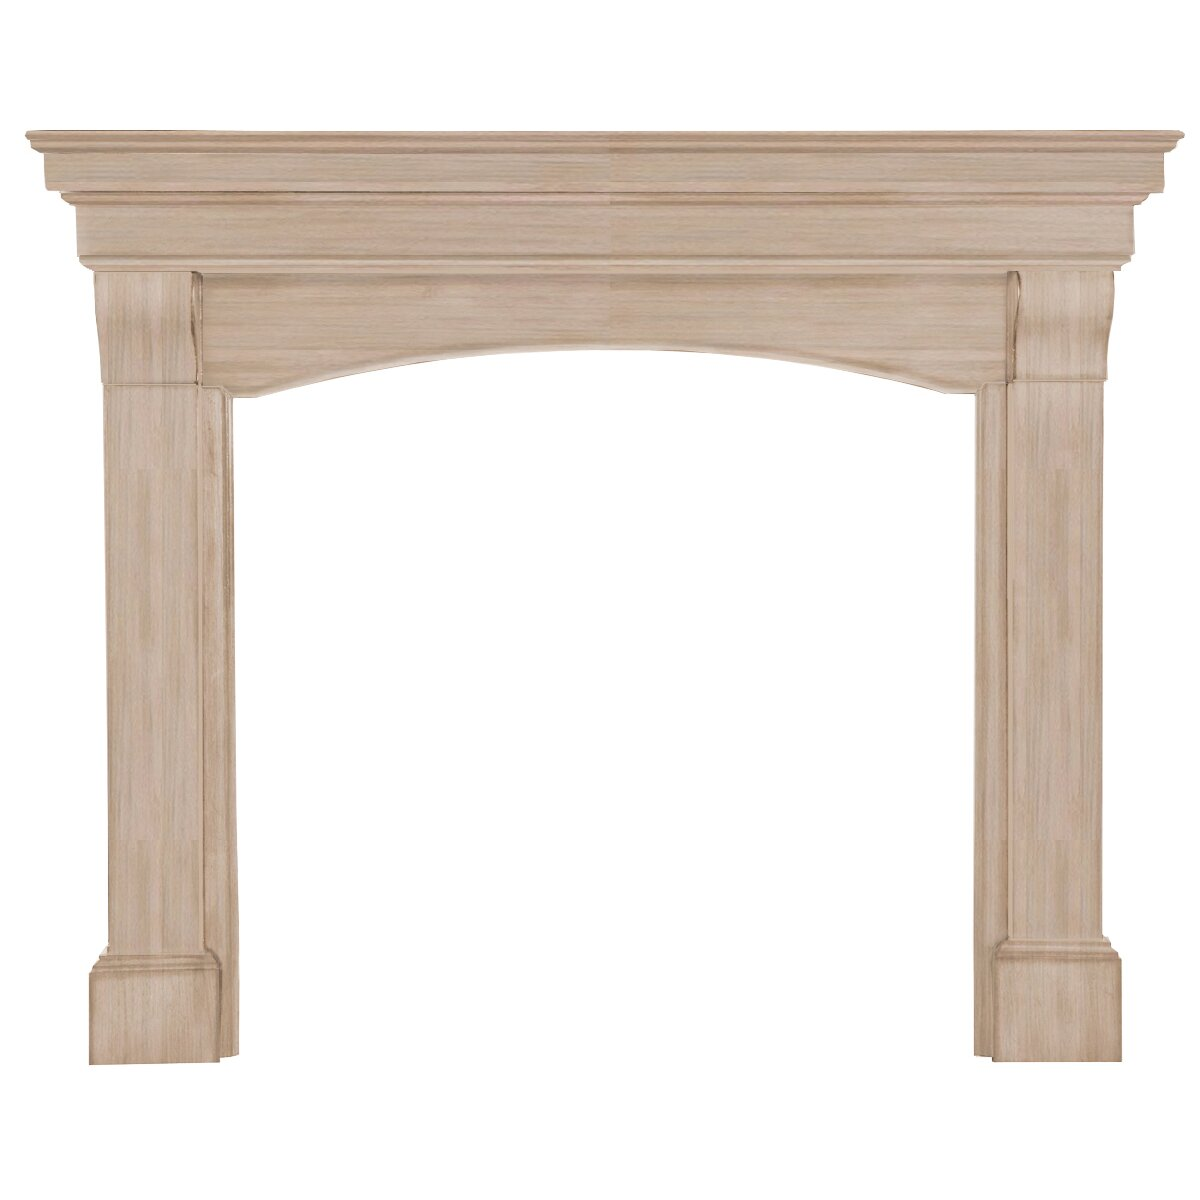 Pearl Mantels The Blue Ridge Fireplace Mantel Surround - Pearl Mantels The Blue Ridge Fireplace Mantel Surround & Reviews